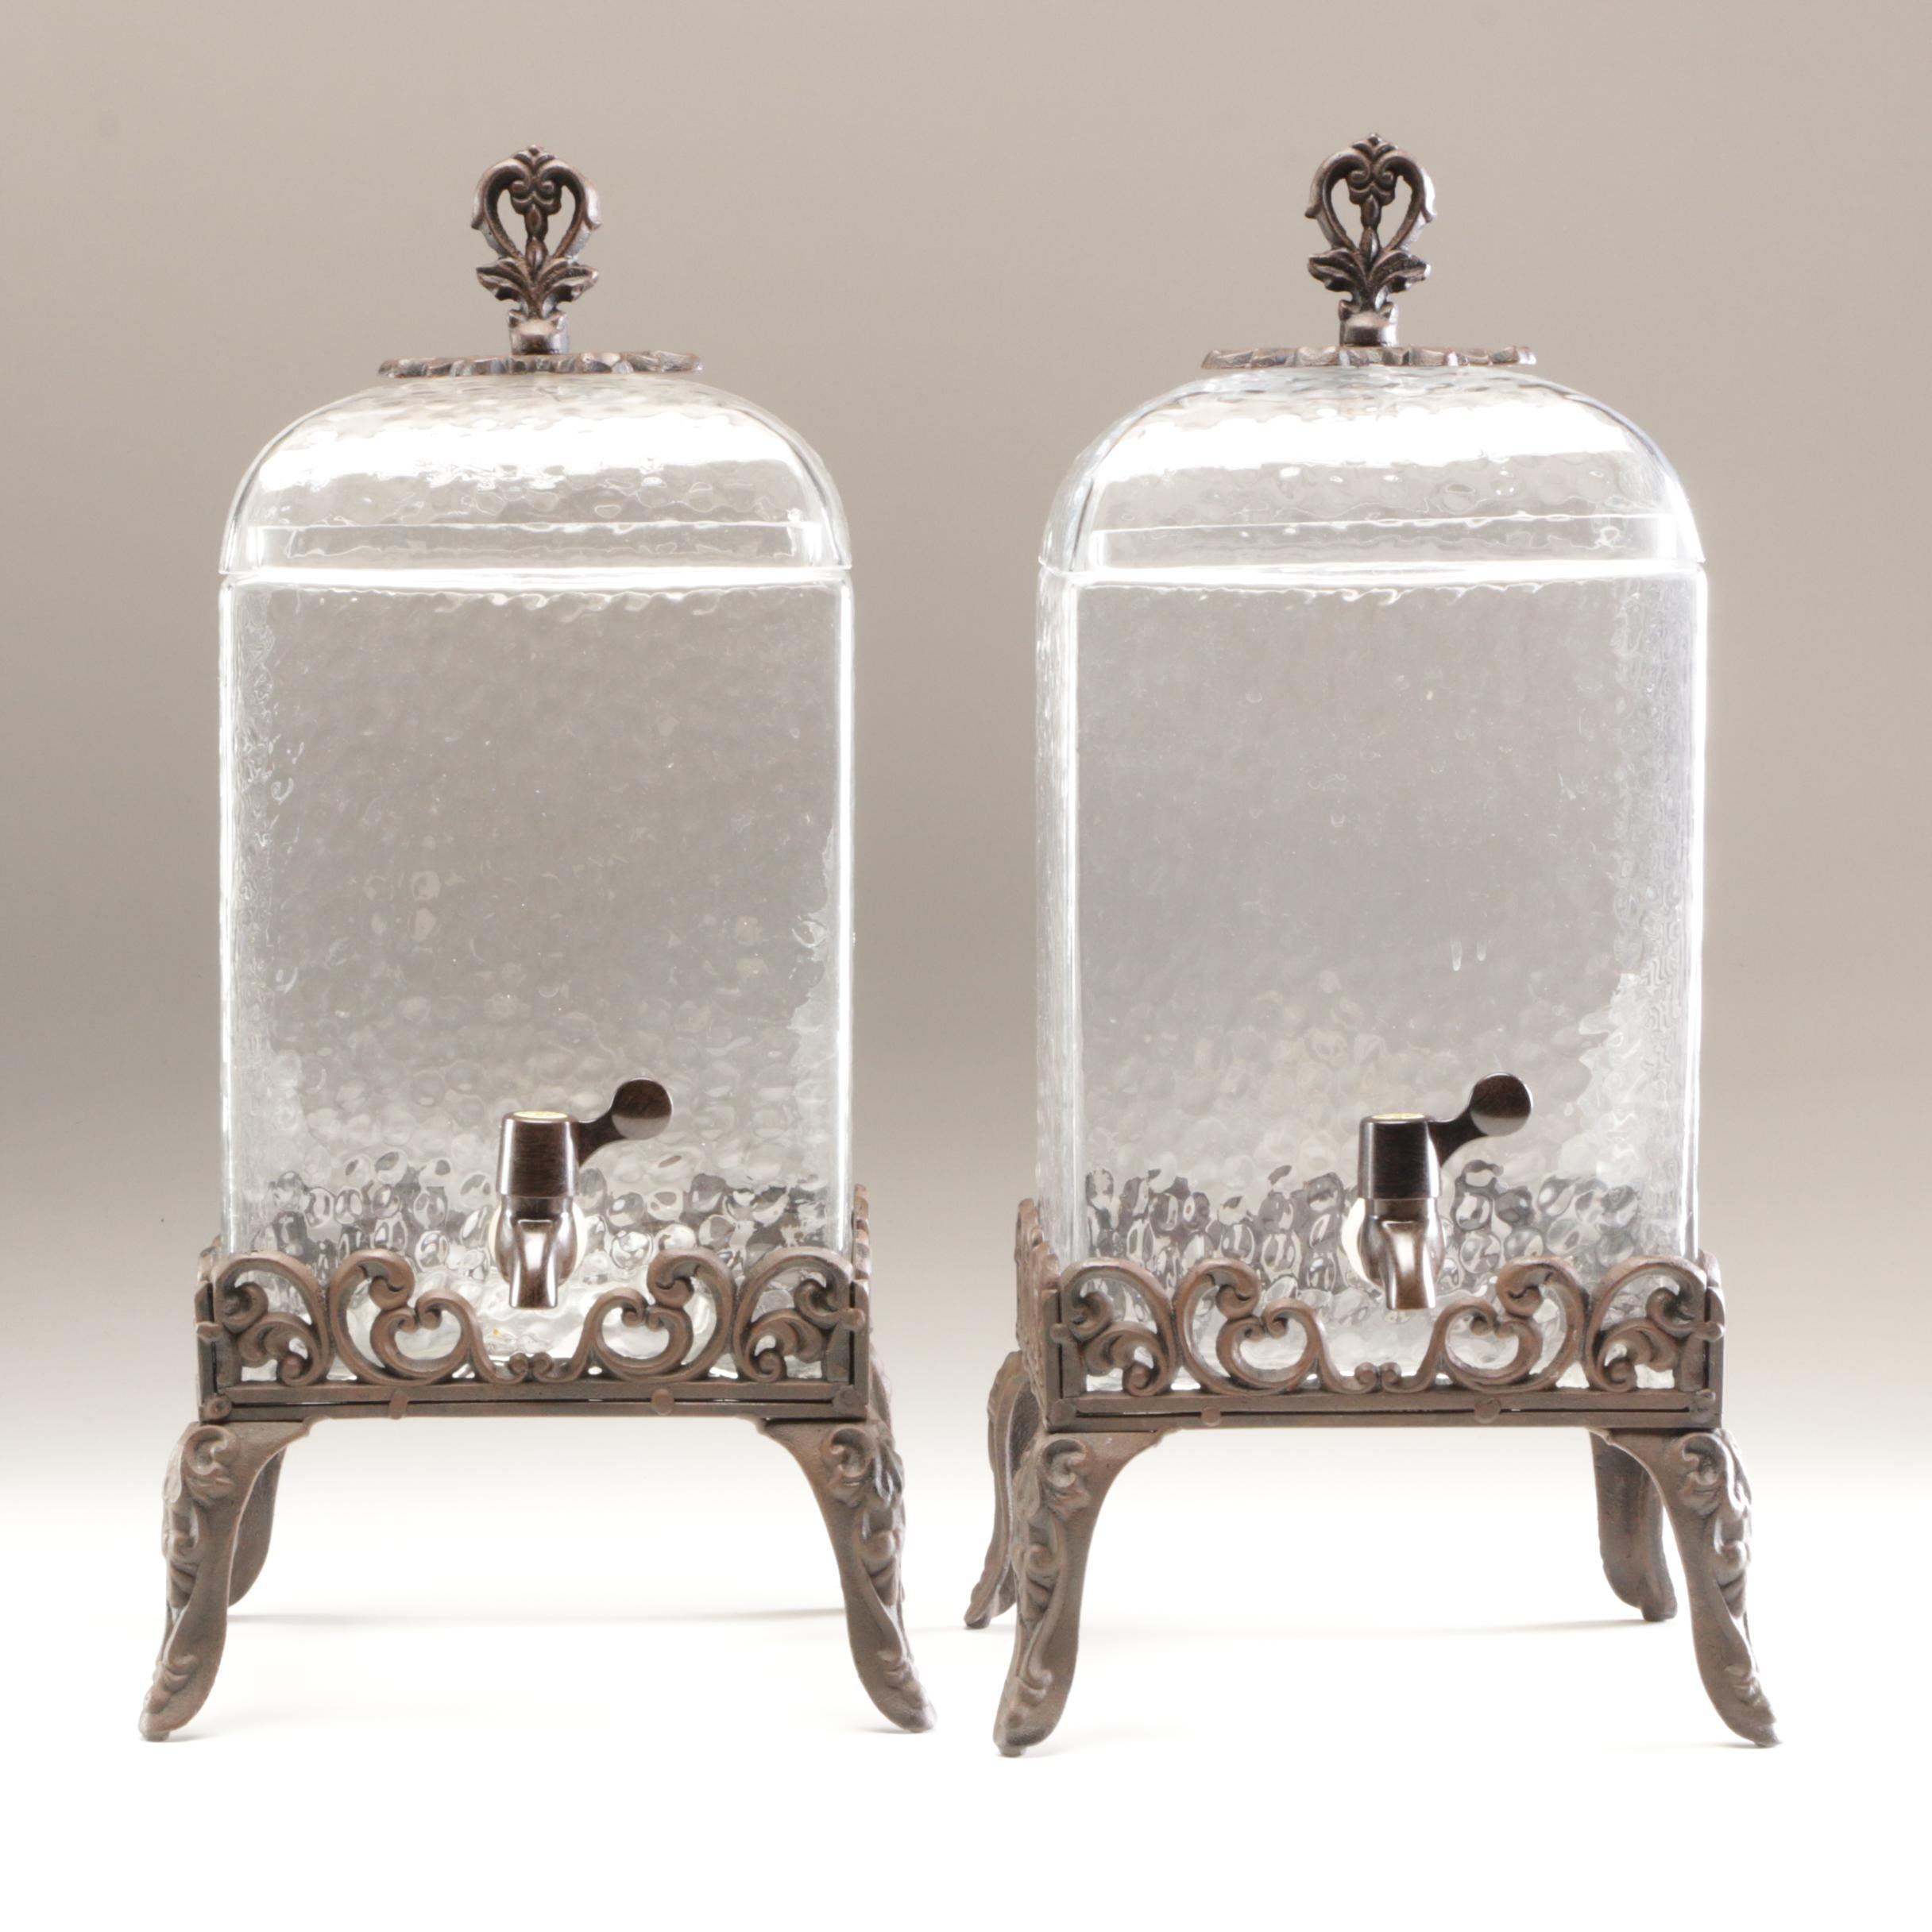 Glass Drink Dispensers with Metal Stands